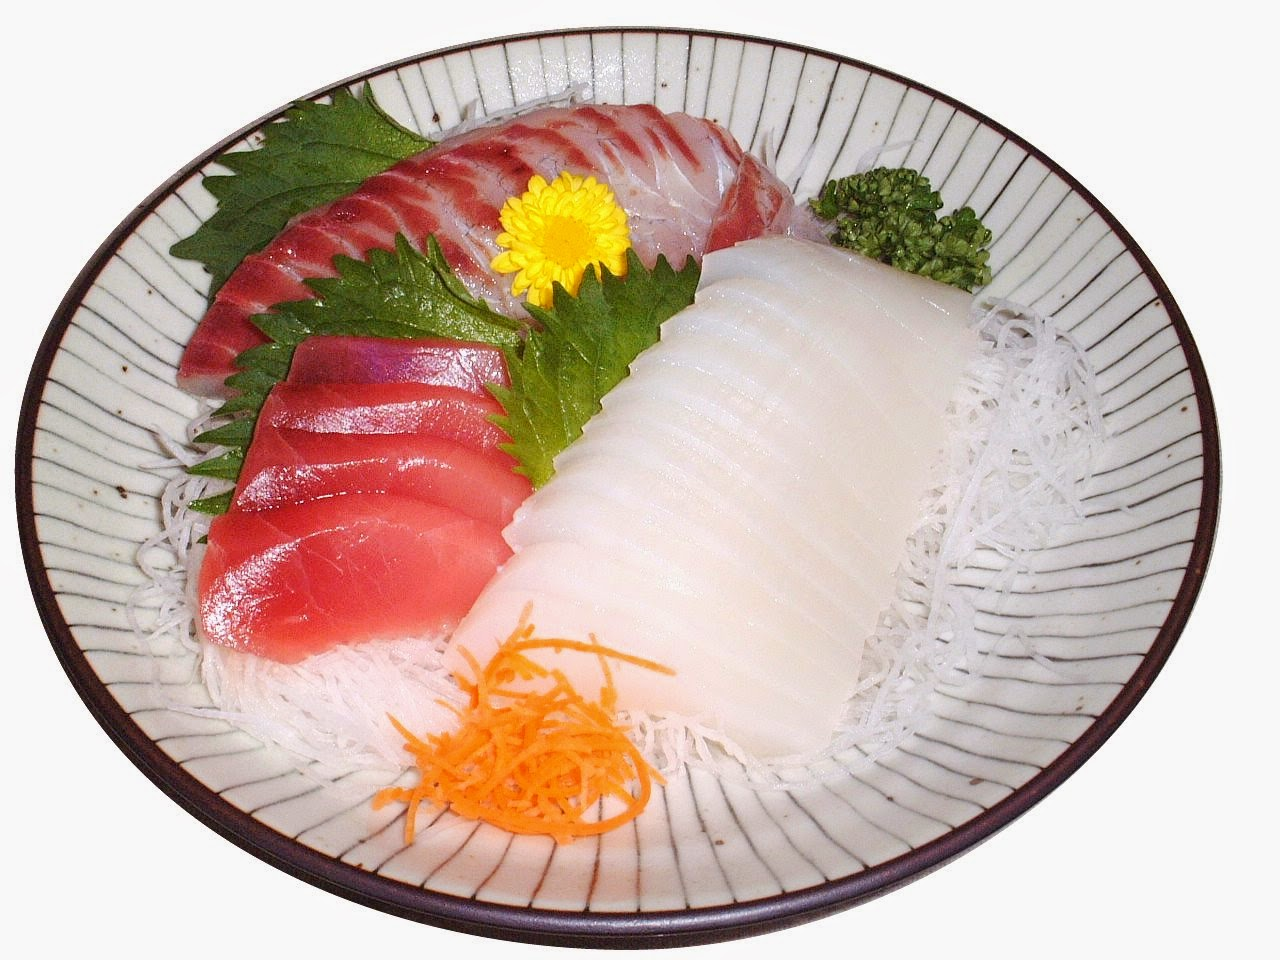 http://gothamist.com/2015/01/30/raw_deal_for_sushi_chefs.php